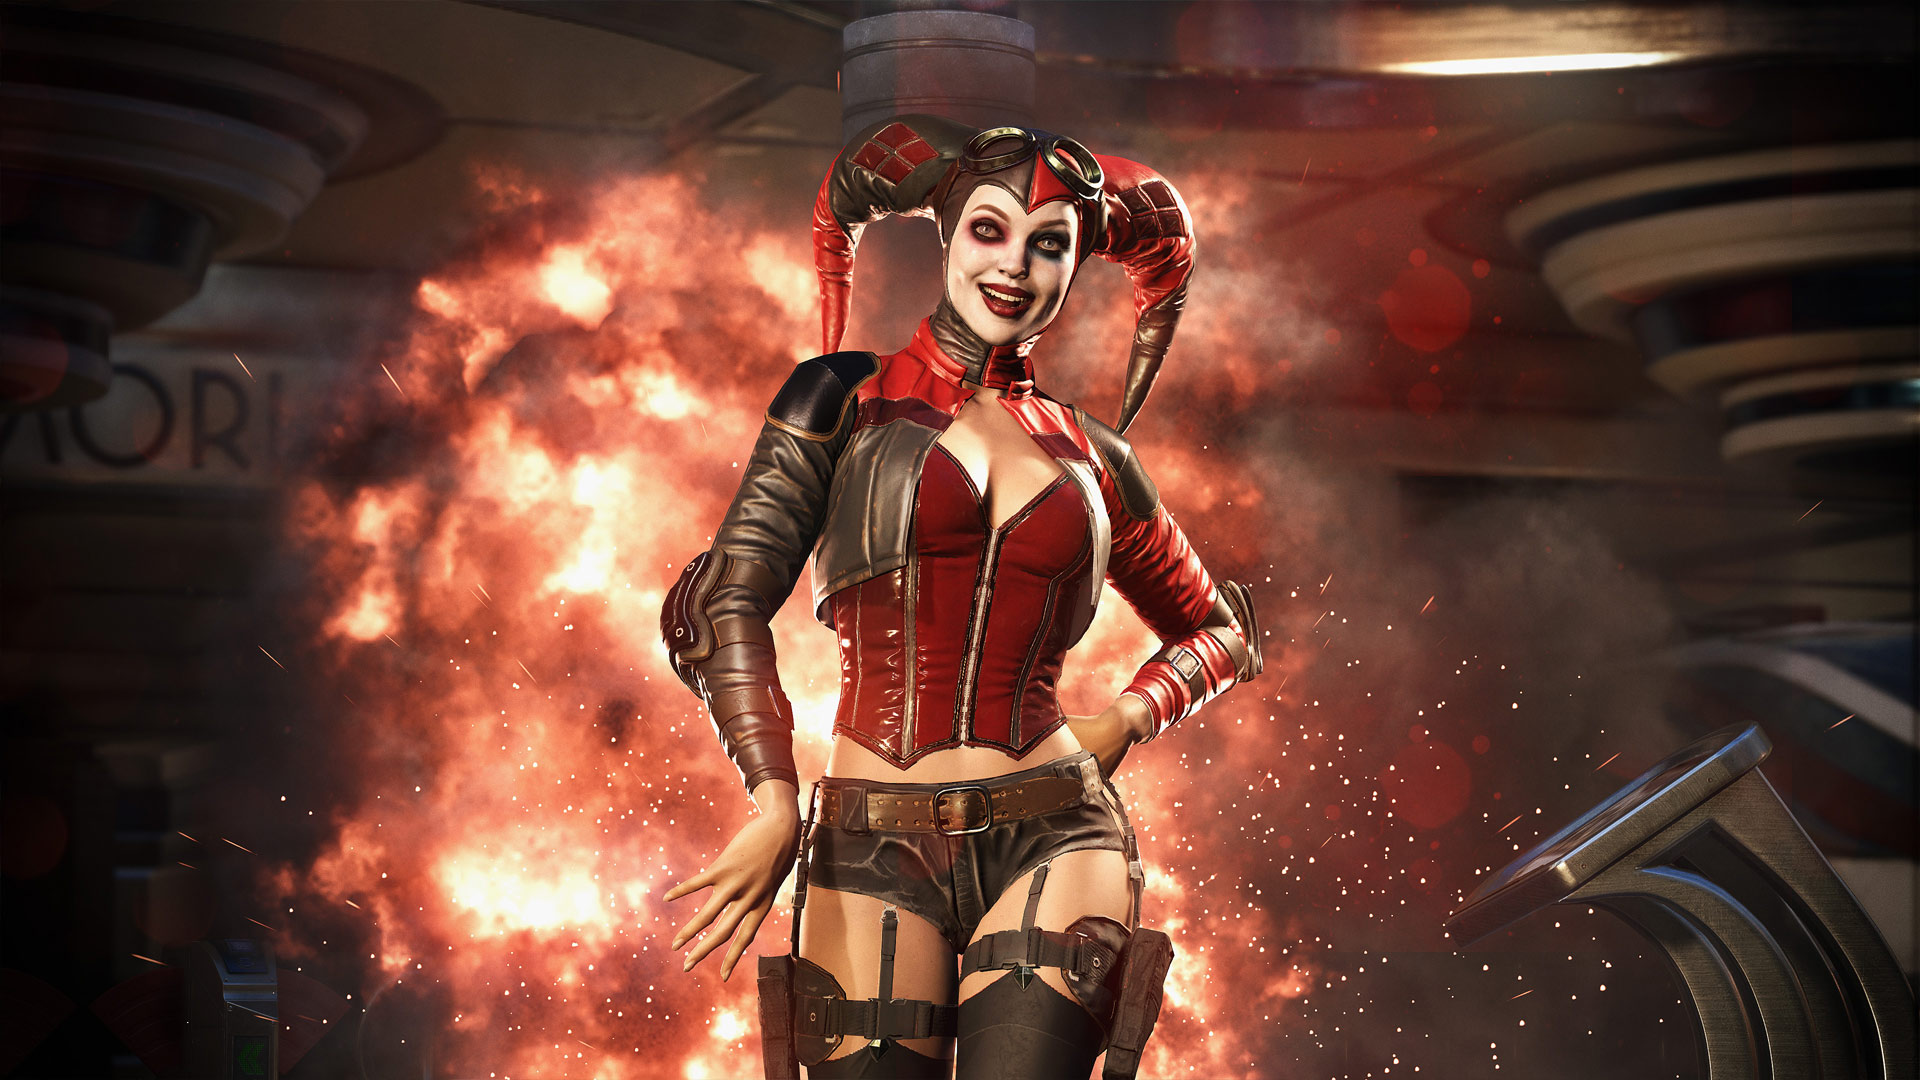 Injustice 2 Harley Quinn Wallpaper